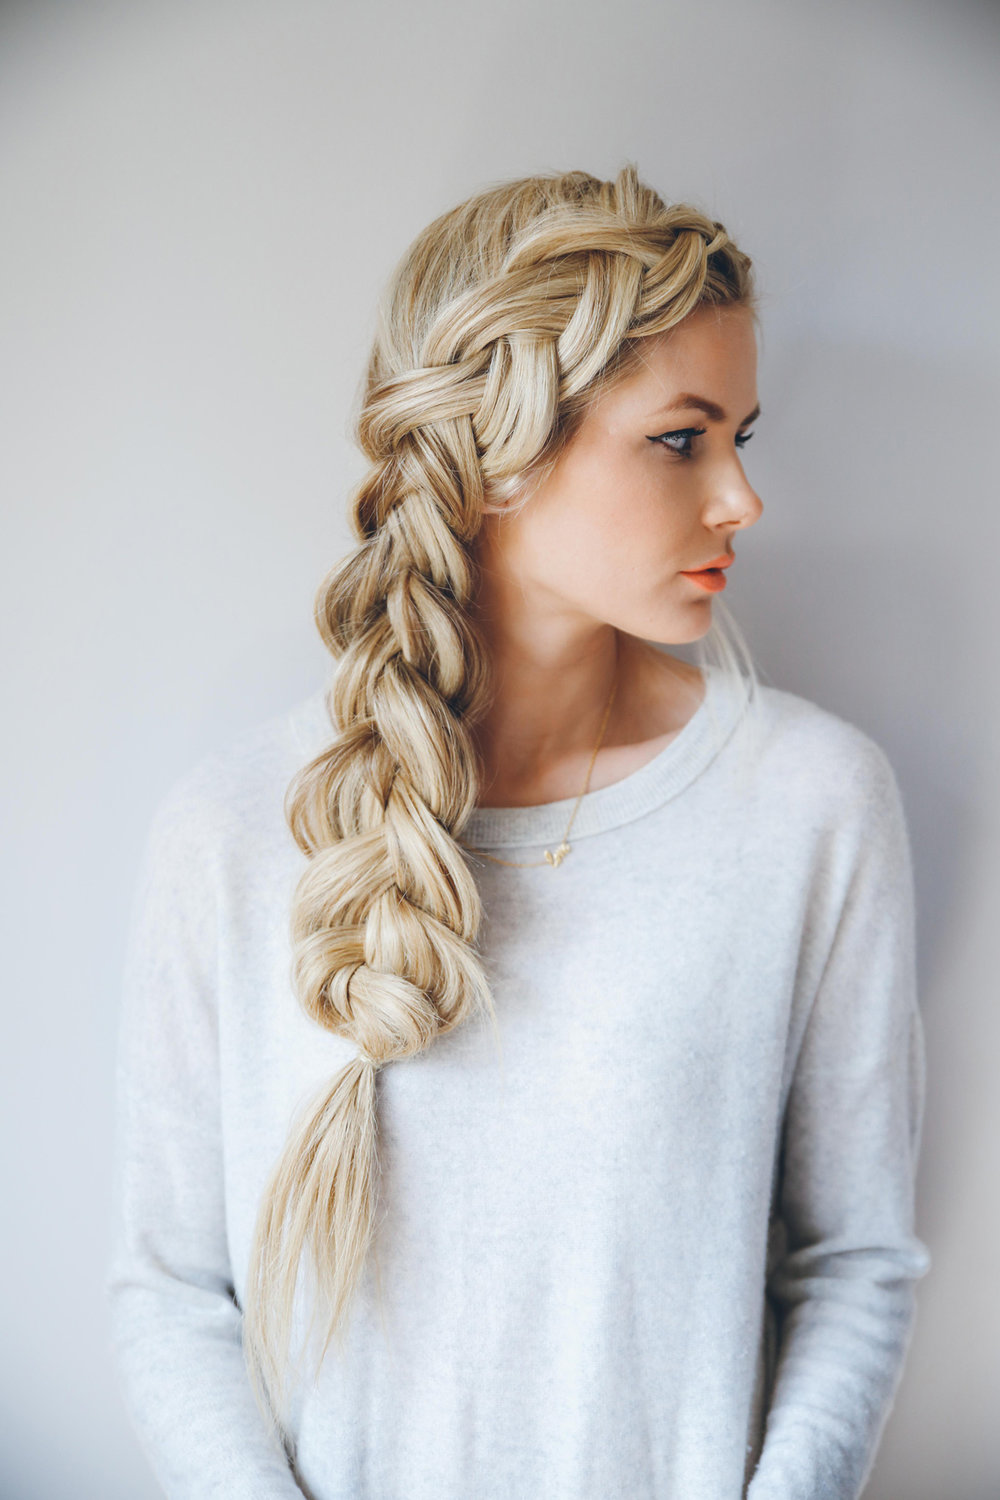 Full Side French Braid - This braid looks a lot more complicated than it is. Brush all your hair to one side, and start with a 2 inch portion at your bangs. As you work your way down, be sure to pull hair from behind and from the other side, braiding your way down. After tying the bottom, carefully pull hair from the inside of the braid, slowly working your way down. Don't be shy with this part as it is what gives this braid that voluminous look!